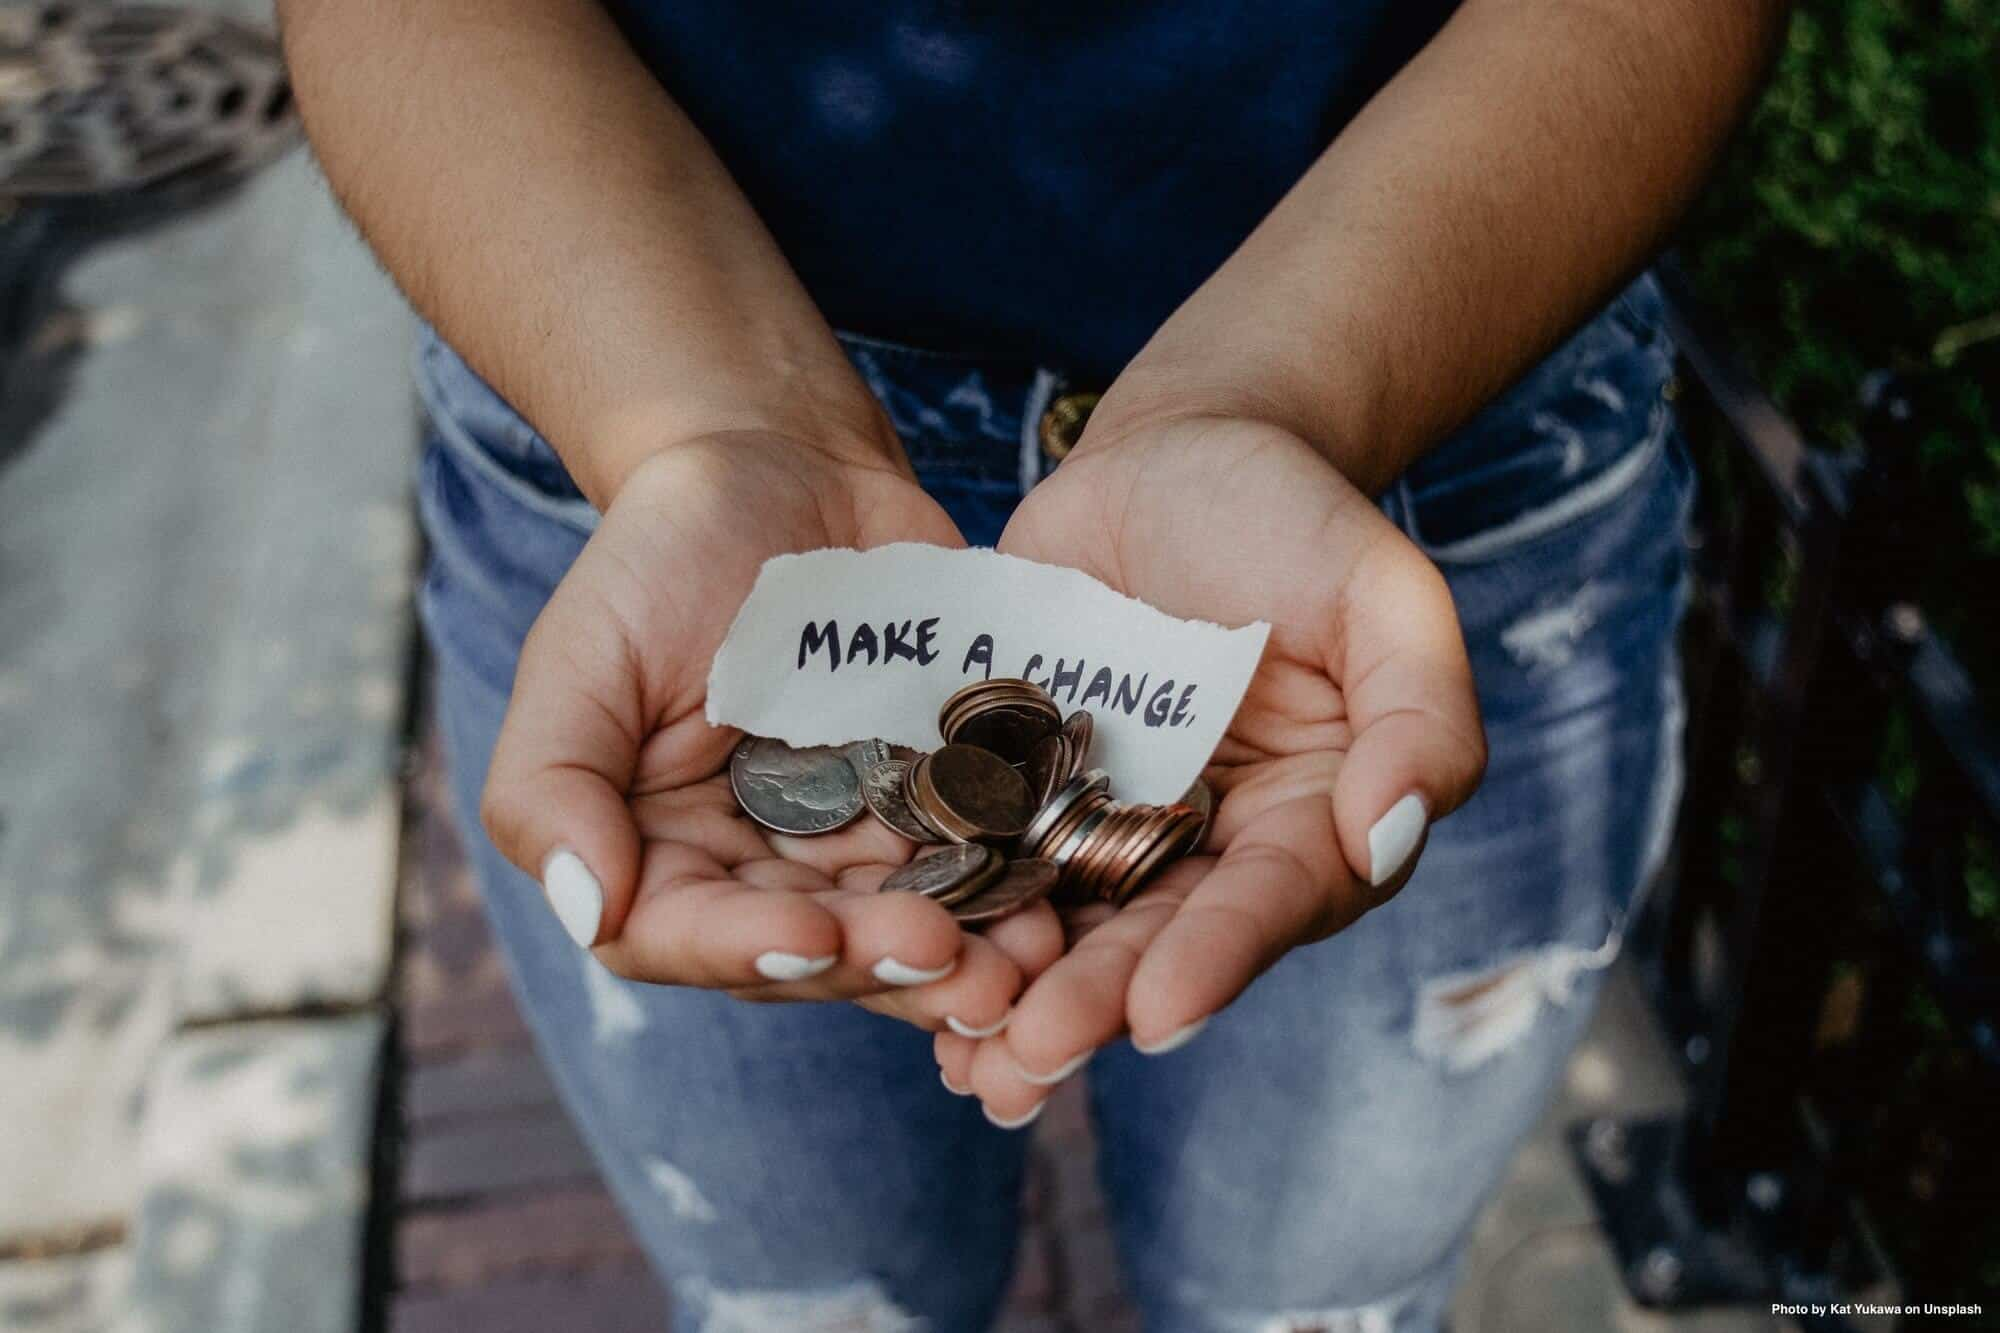 women holding coins to show making change through charity and justice